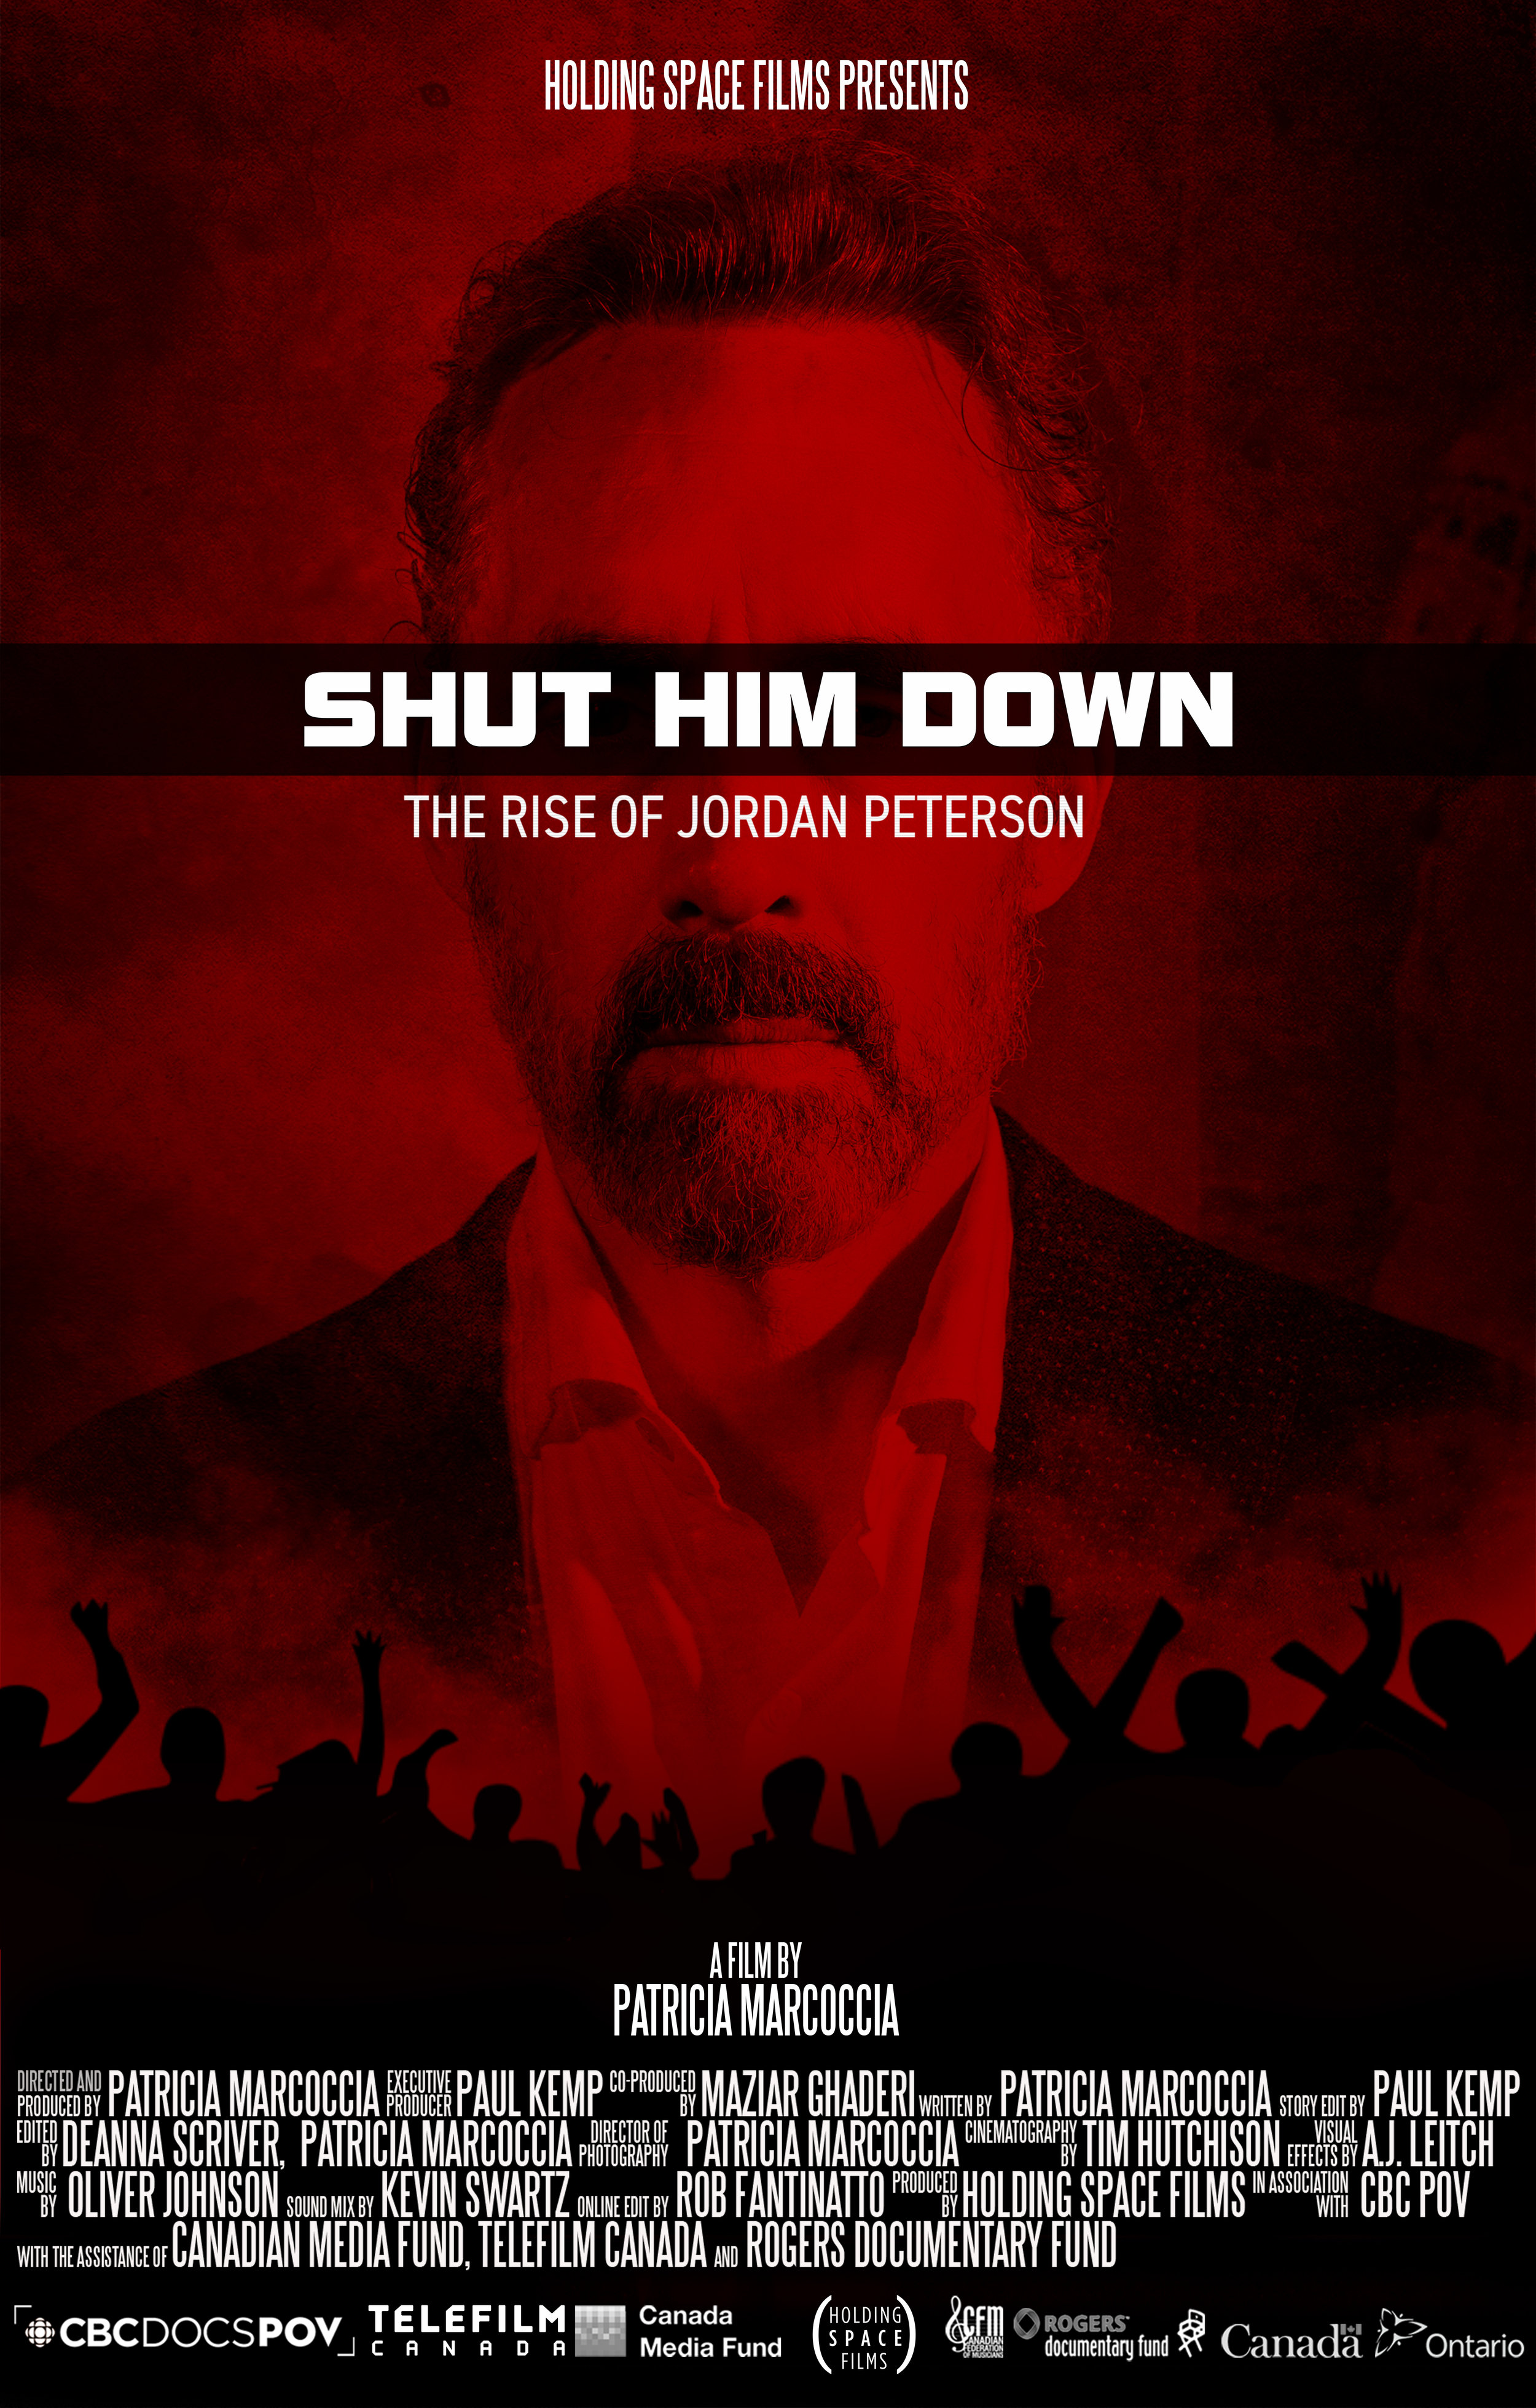 Shut Him Down: The Rise Of Jordan Peterson - A behind-the-scenes film reveals an intimate glimpse into the fiery controversy that launched University of Toronto professor Jordan Peterson into perhaps the most reviled, but also loved, public intellectual in Canadian history.Aired on CBC Docs POV November 2 2018.